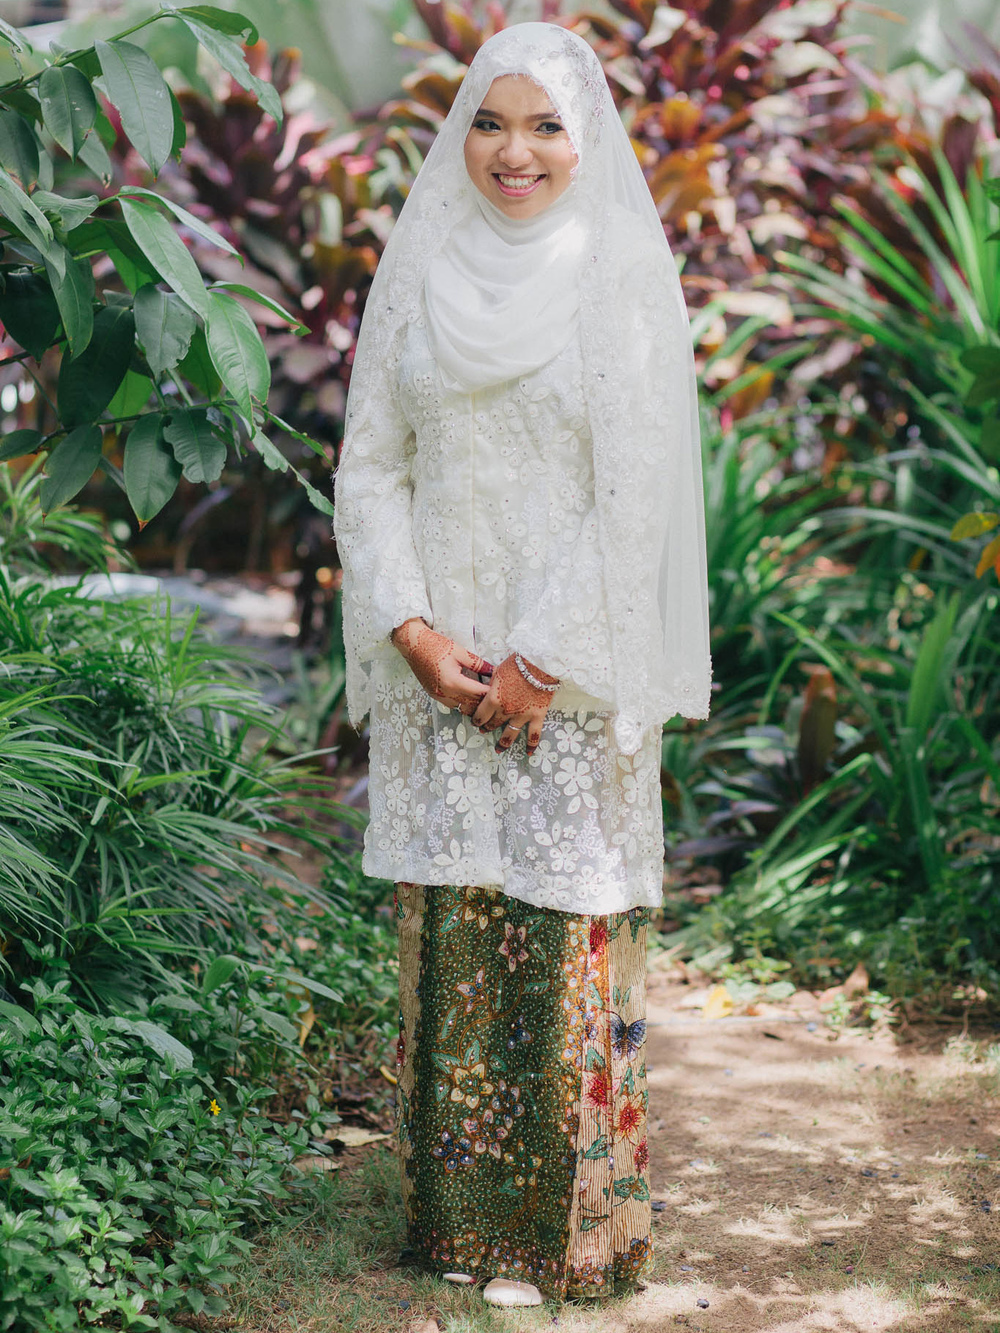 singapore-wedding-photographer-travel-wemadethese-atara-hafizah-33.jpg